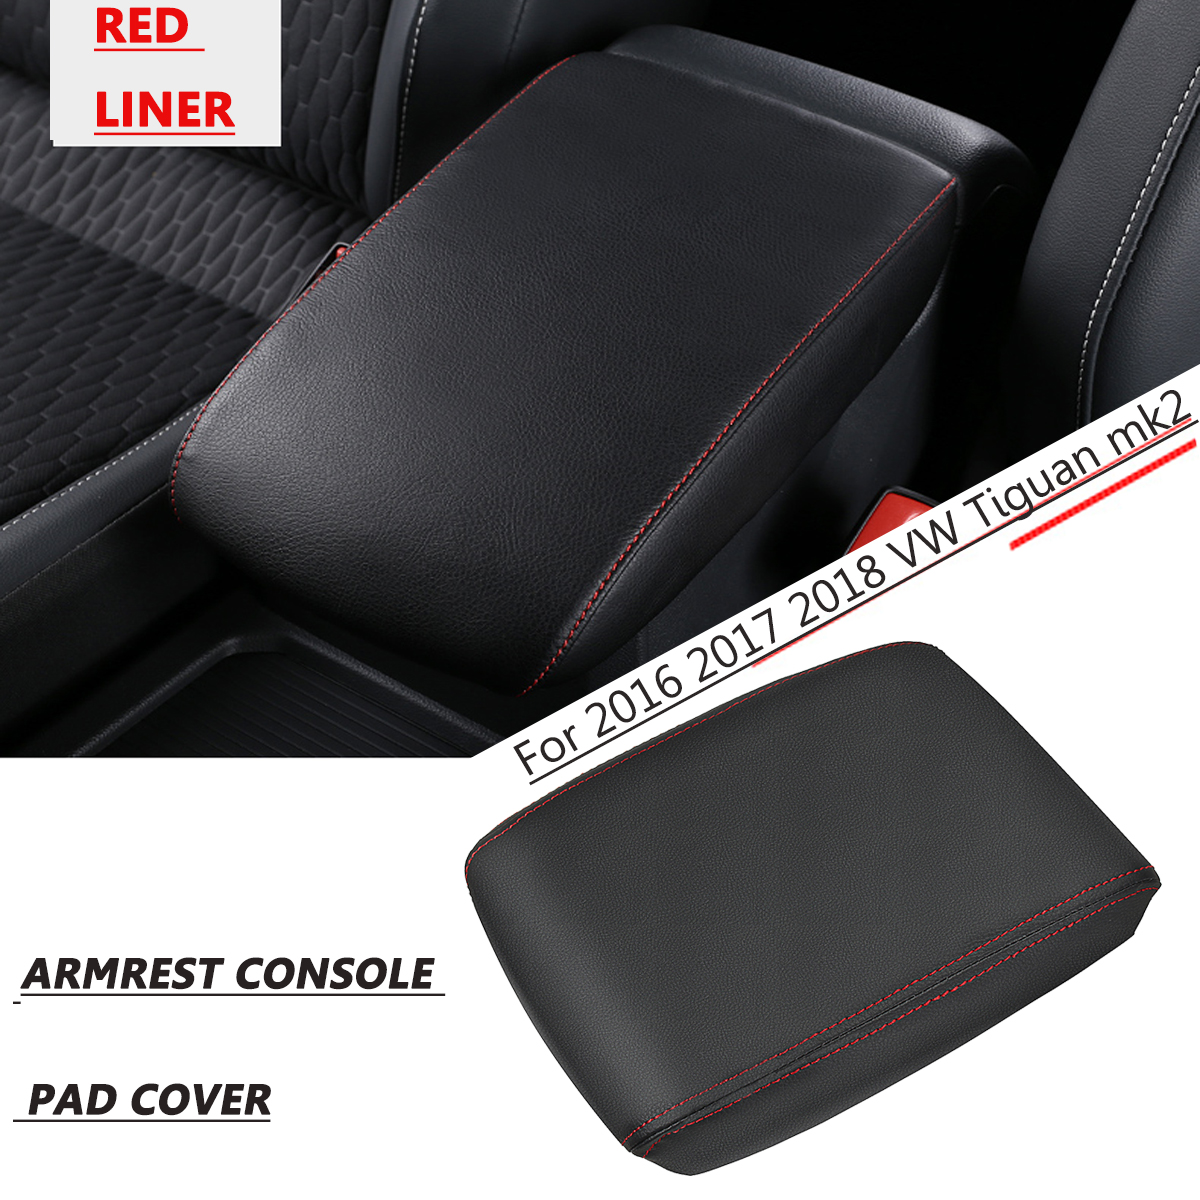 Car Center Console Seat Armrest Box Pads Cover PU Leather for Volkswagen/VW Tiguan MK2 2016 2017 2018 Car Interior Accessories 1pc car center console armrest box sticker decal wrap guard protector cover for tesla model s model x auto interior accessories